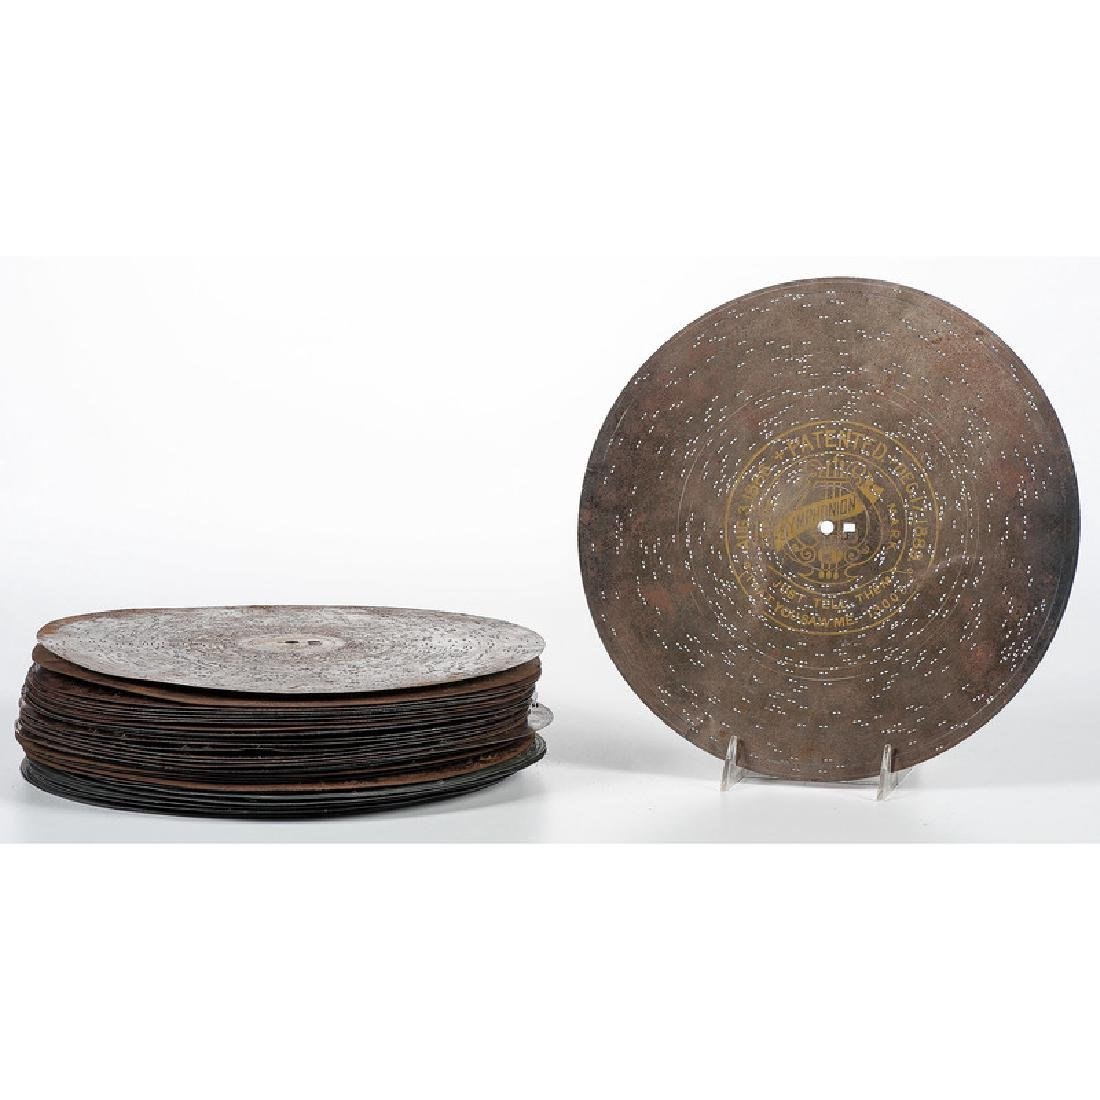 Group of 11.75-Inch Music Box Discs